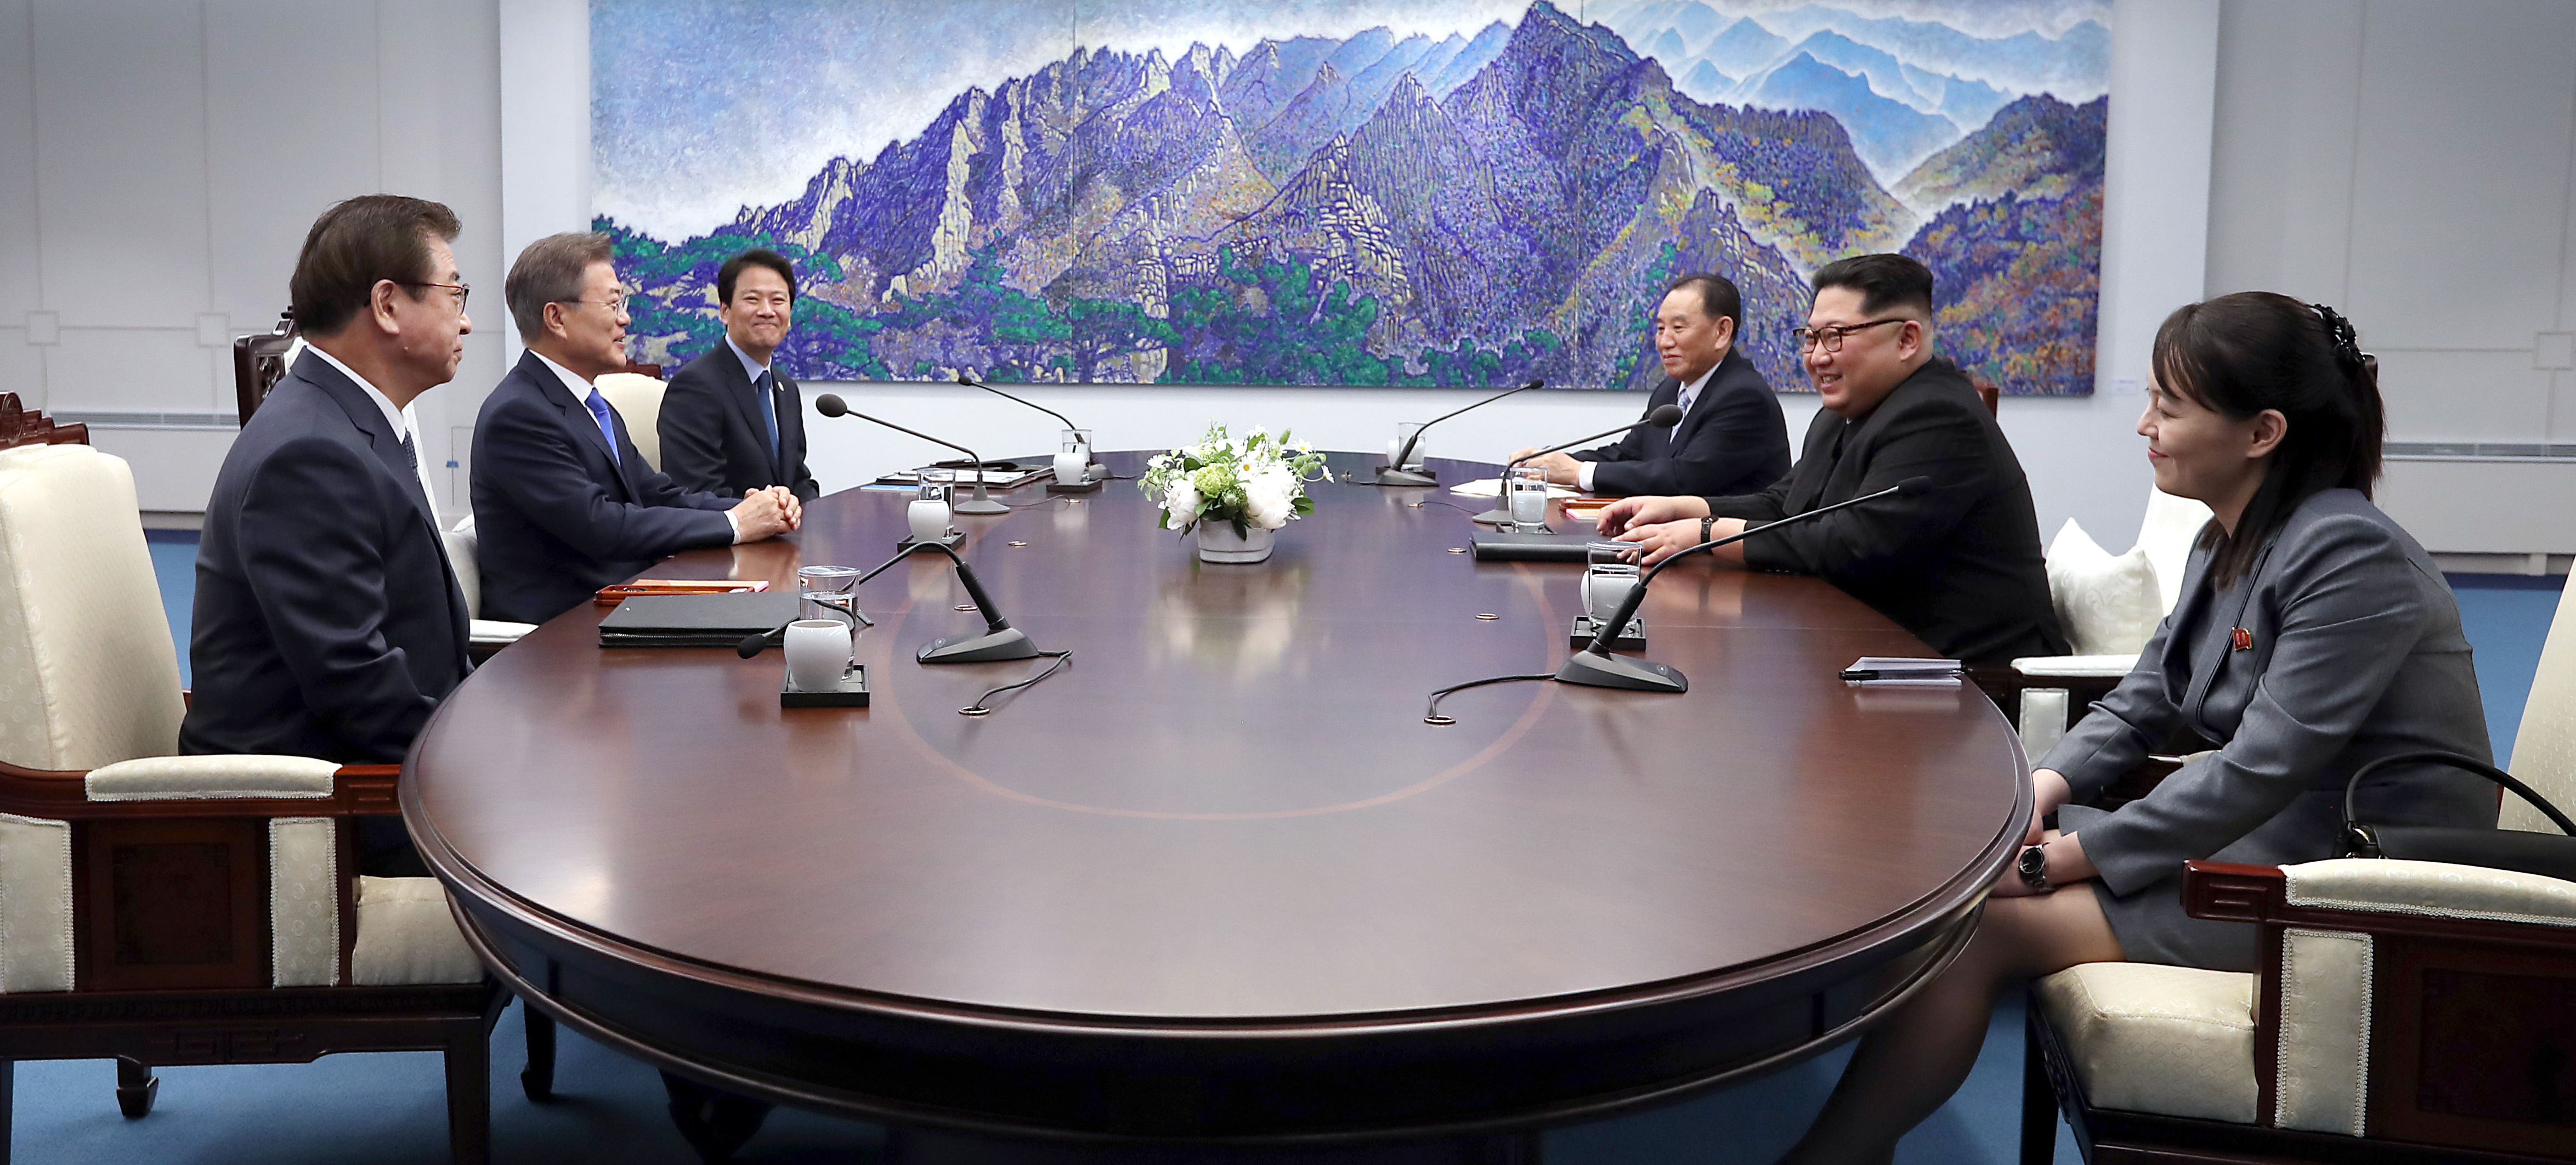 South Korean delegation including President Moon Jae-in and North Korean delegation including Leader Kim Jong Un sit down for the Inter-Korean Summit at the Peace House on April 27, 2018.